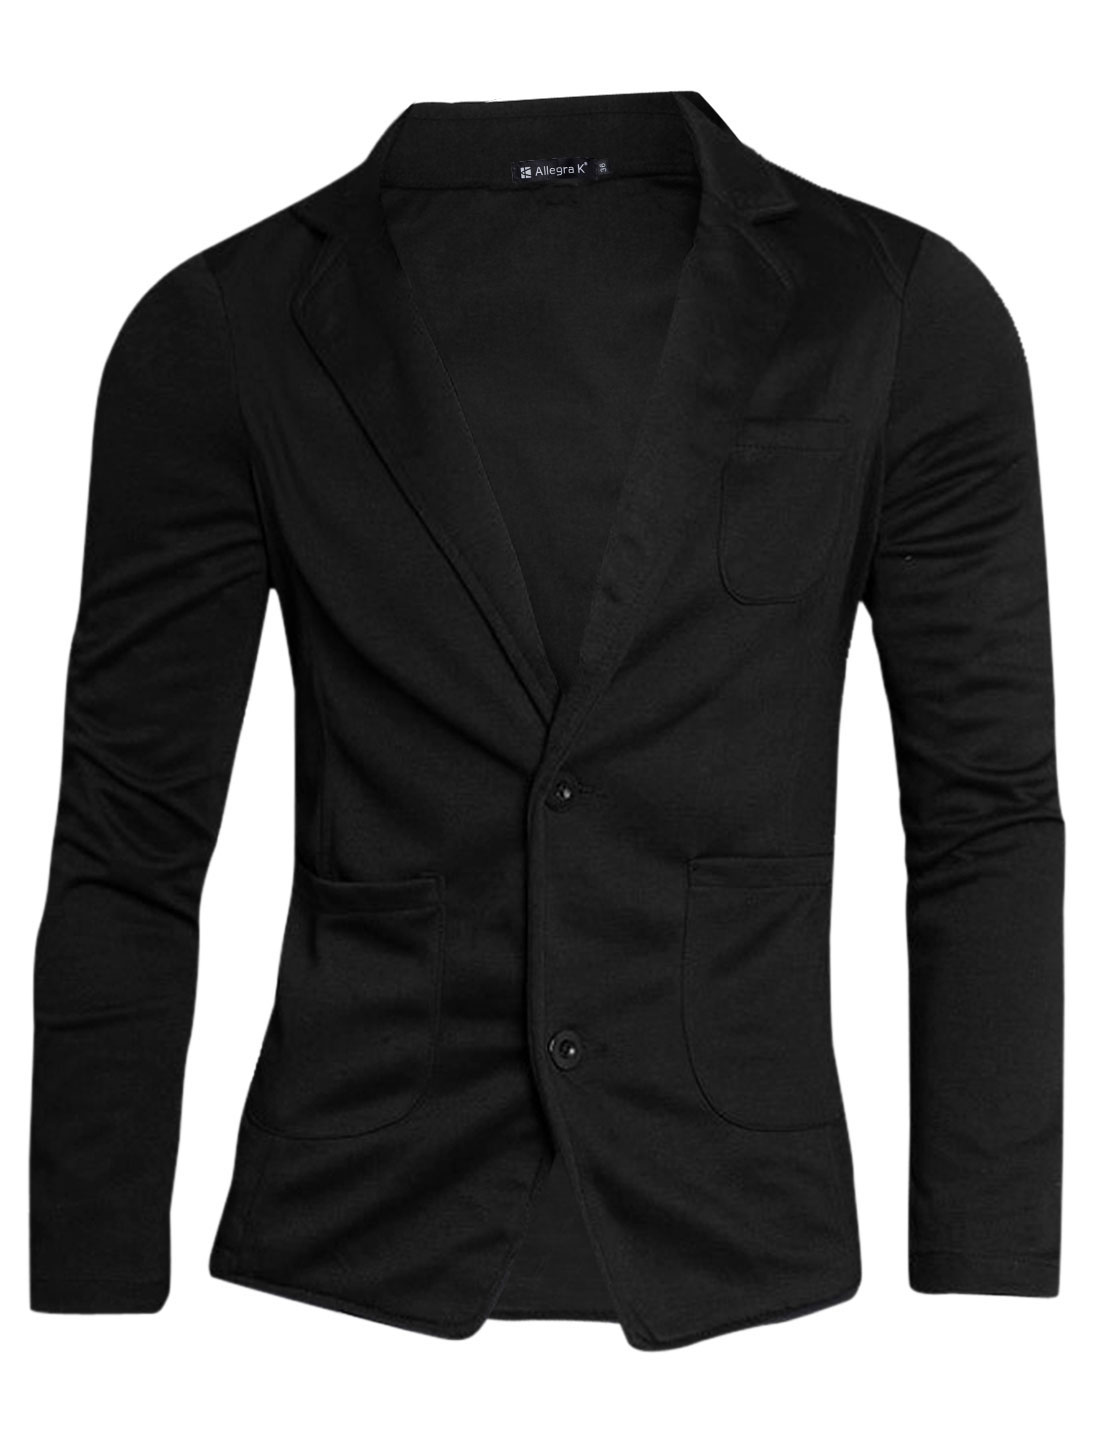 Unique Bargains Men Stylish Two Pockets Design Two Button Front Thin Blazer Black L